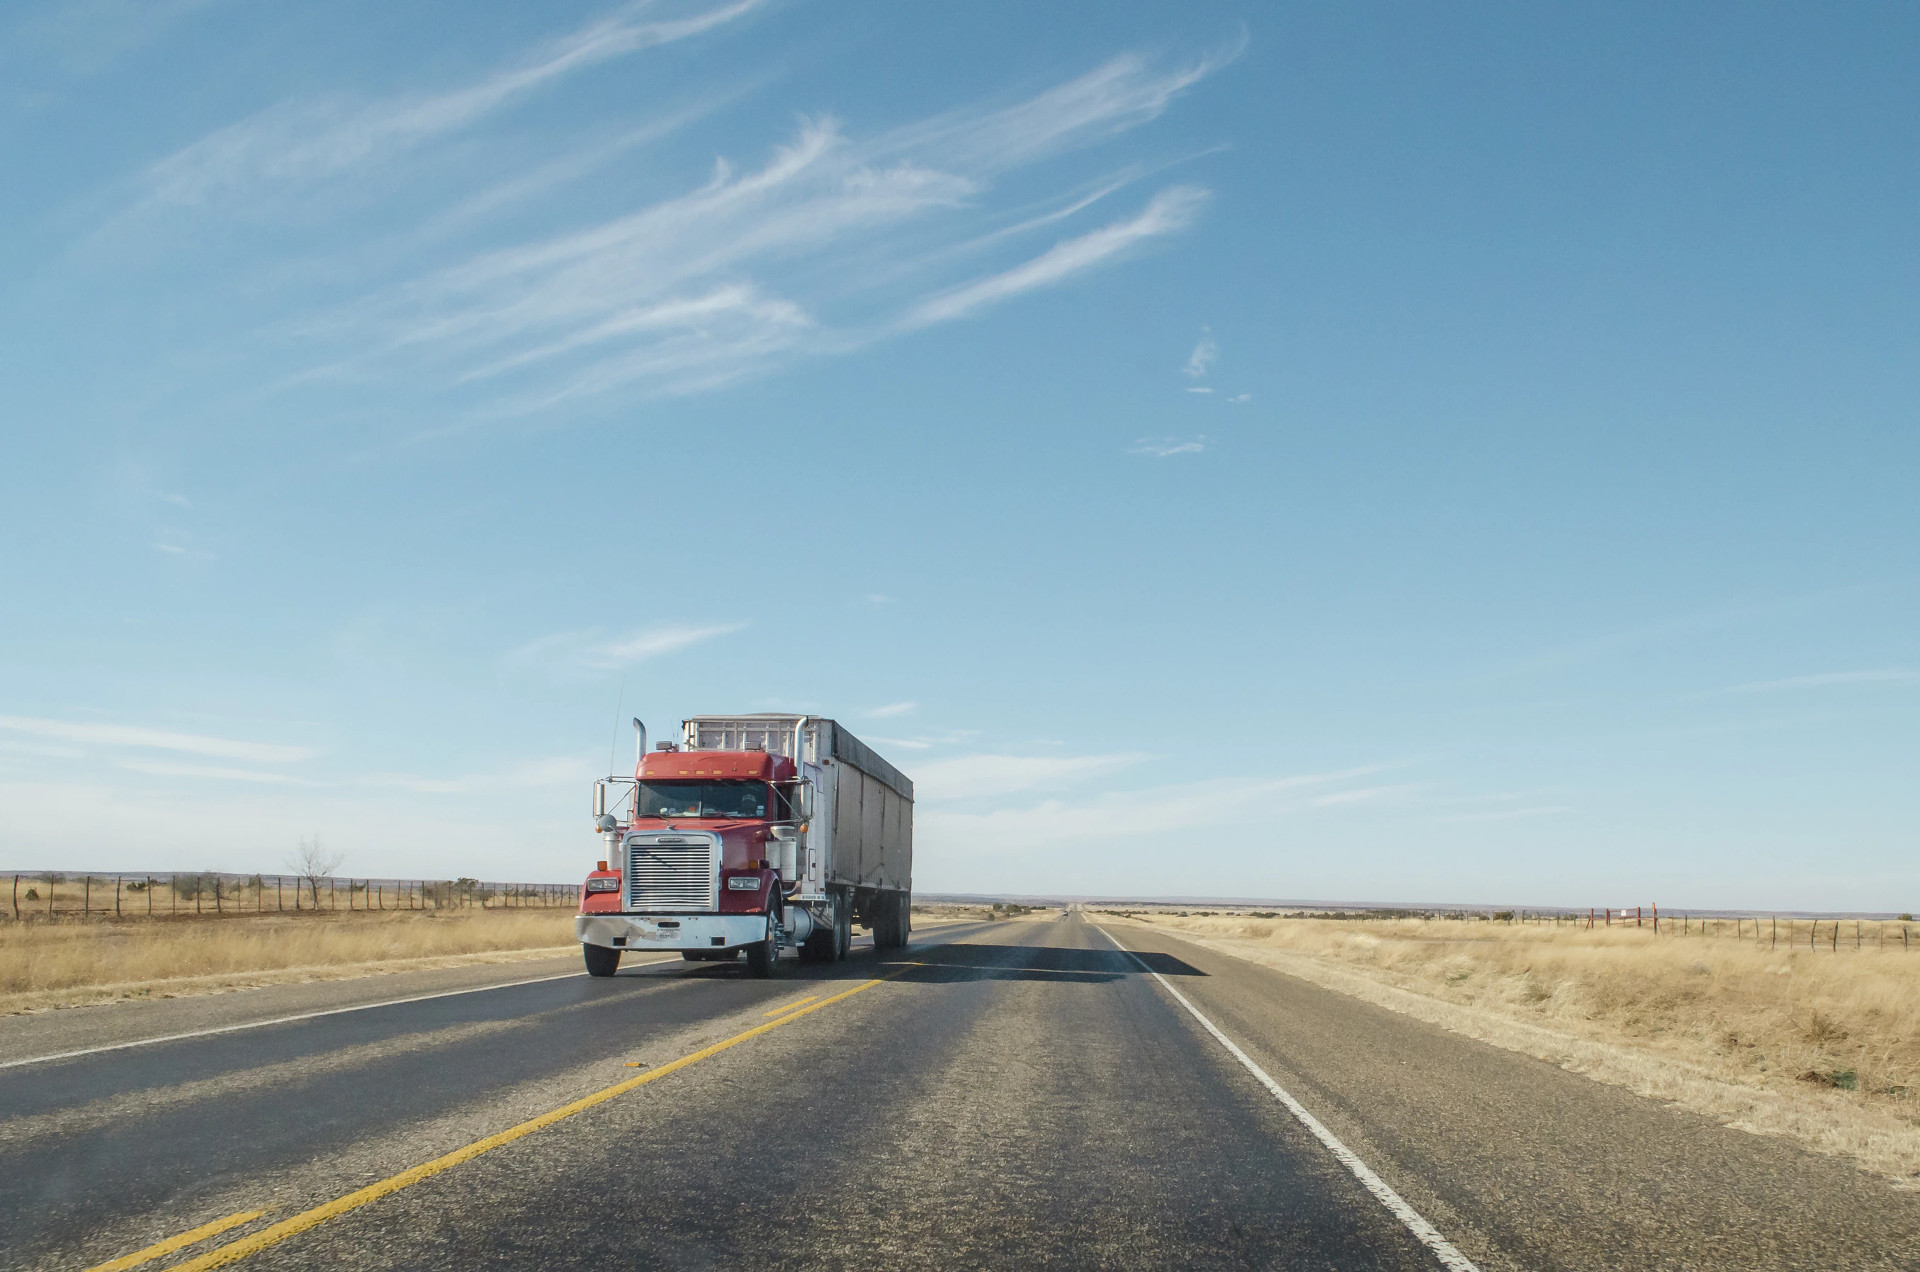 A truck on the road